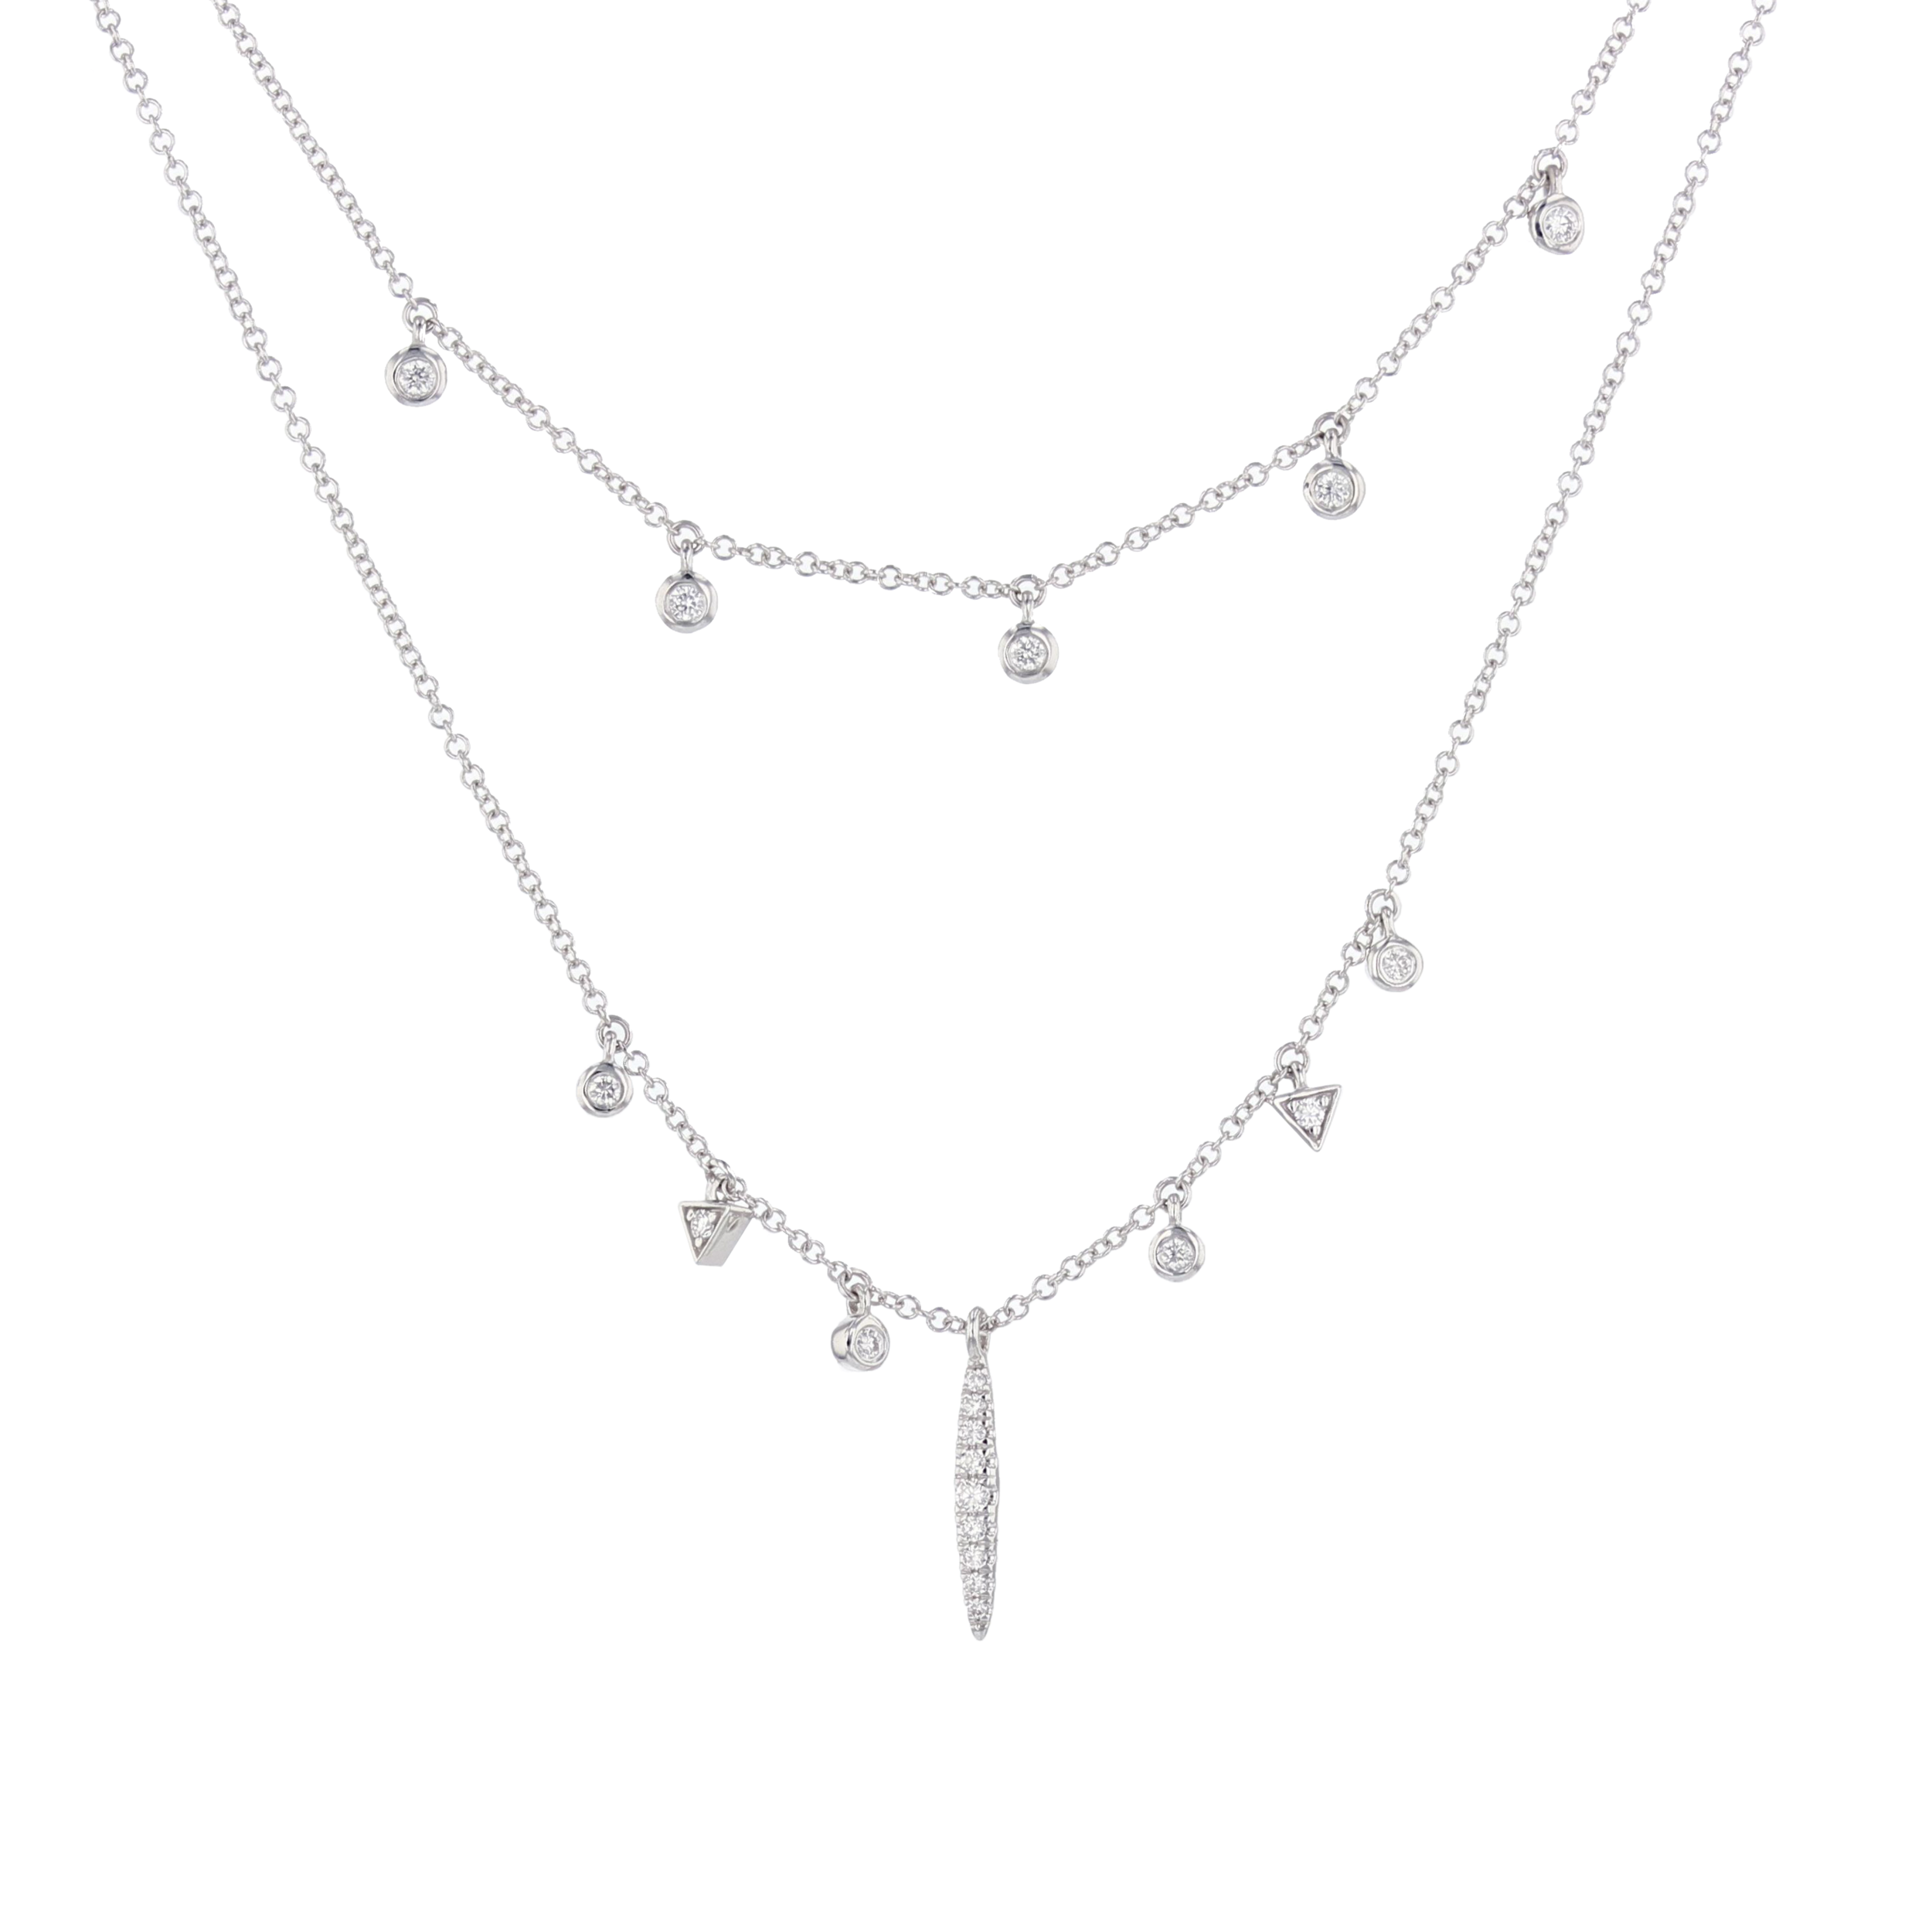 14 w/g Diamond Charm necklace. $1595